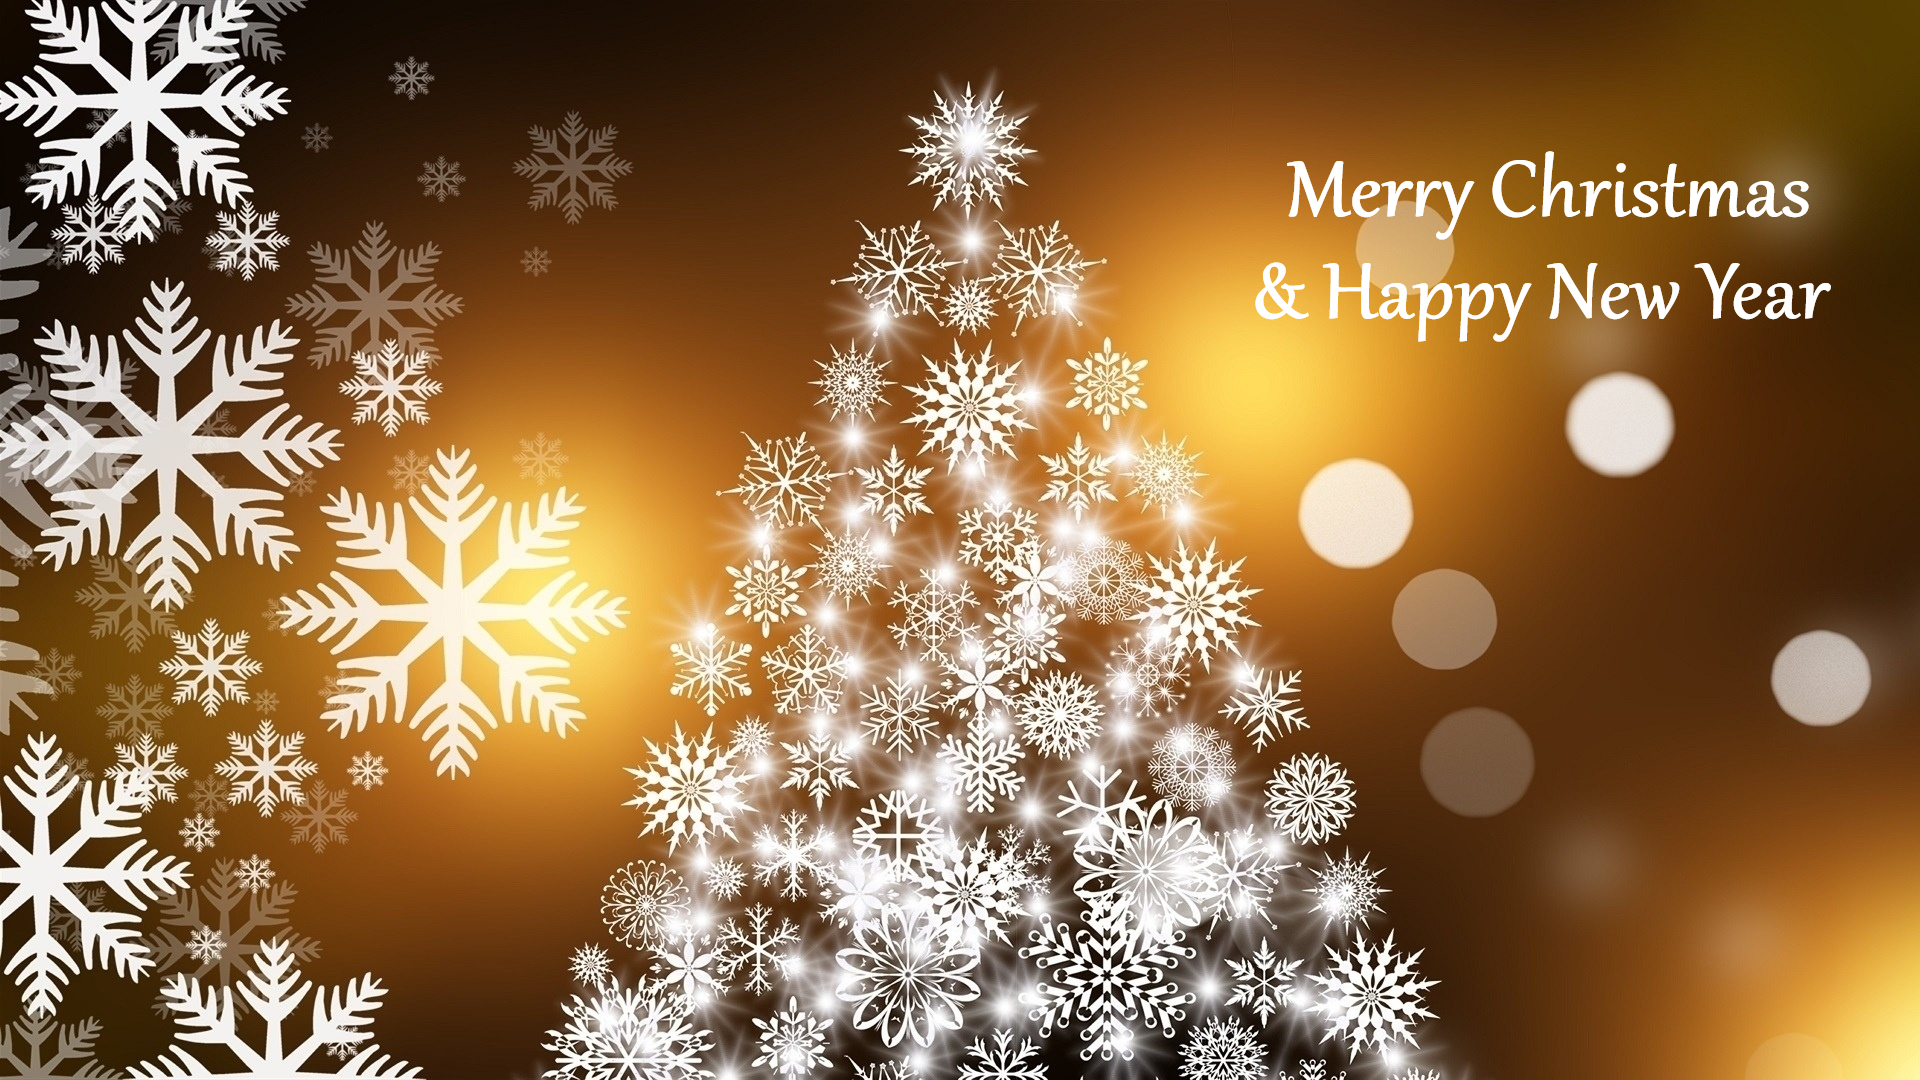 Holiday - Christmas  Merry Christmas Happy New Year Snowflake New Year Christmas Tree Wallpaper